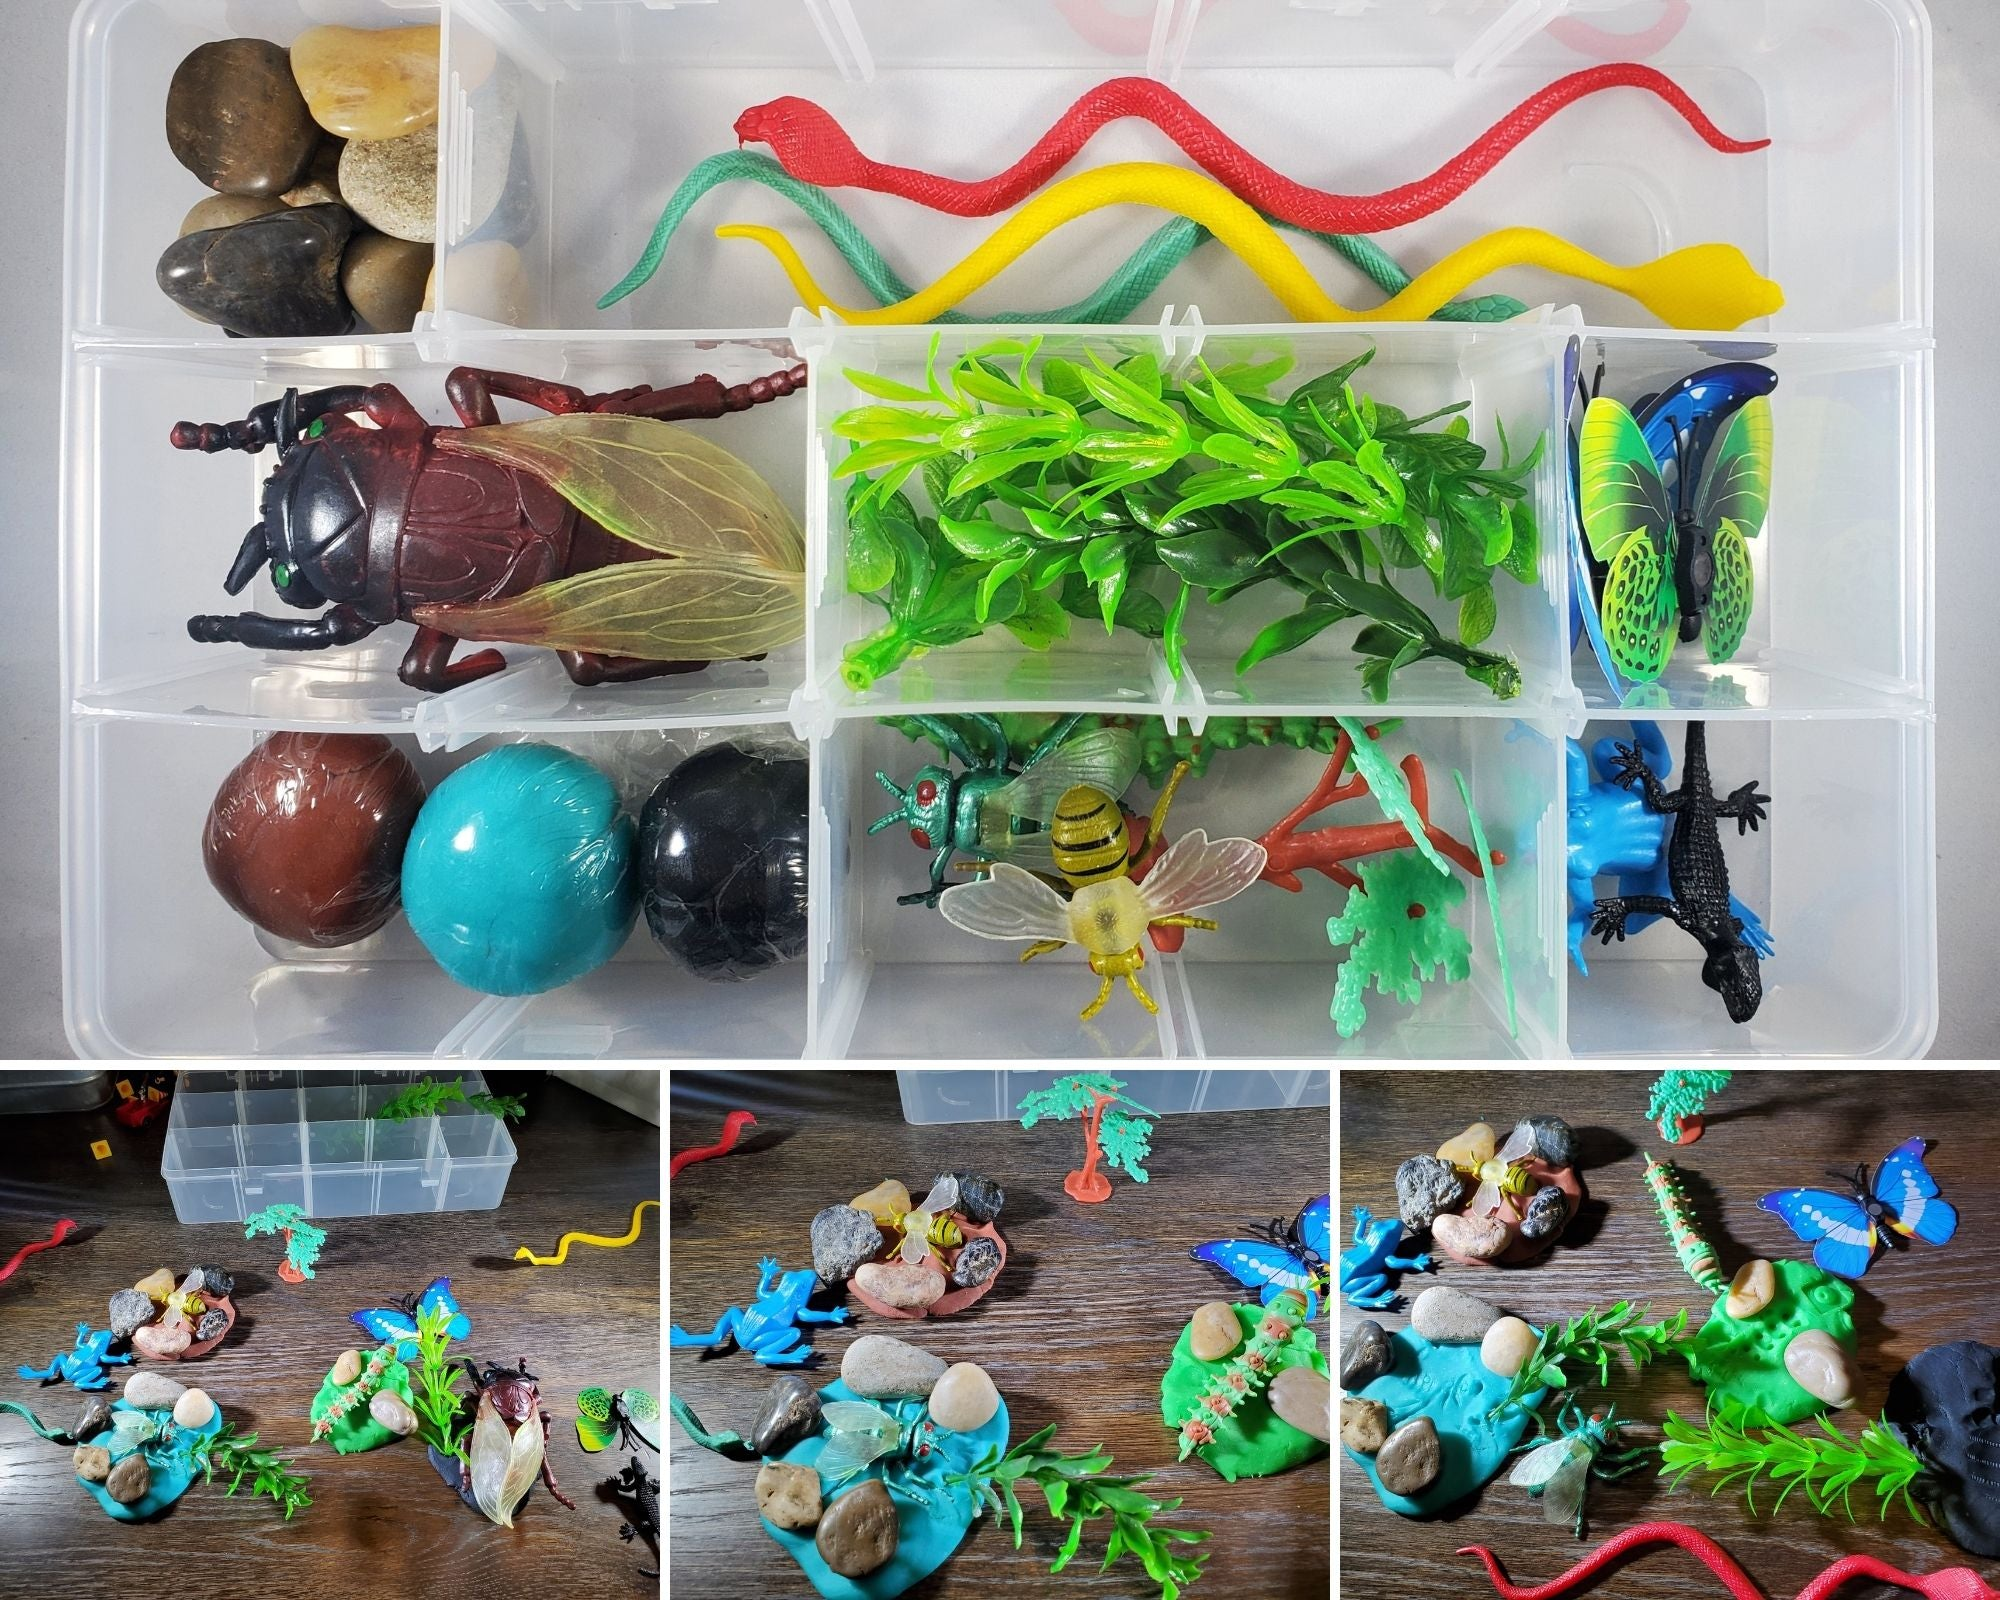 Insects Bugs and Critters Play Dough Sensory Bin Kit Playdough Box Gift for Boys